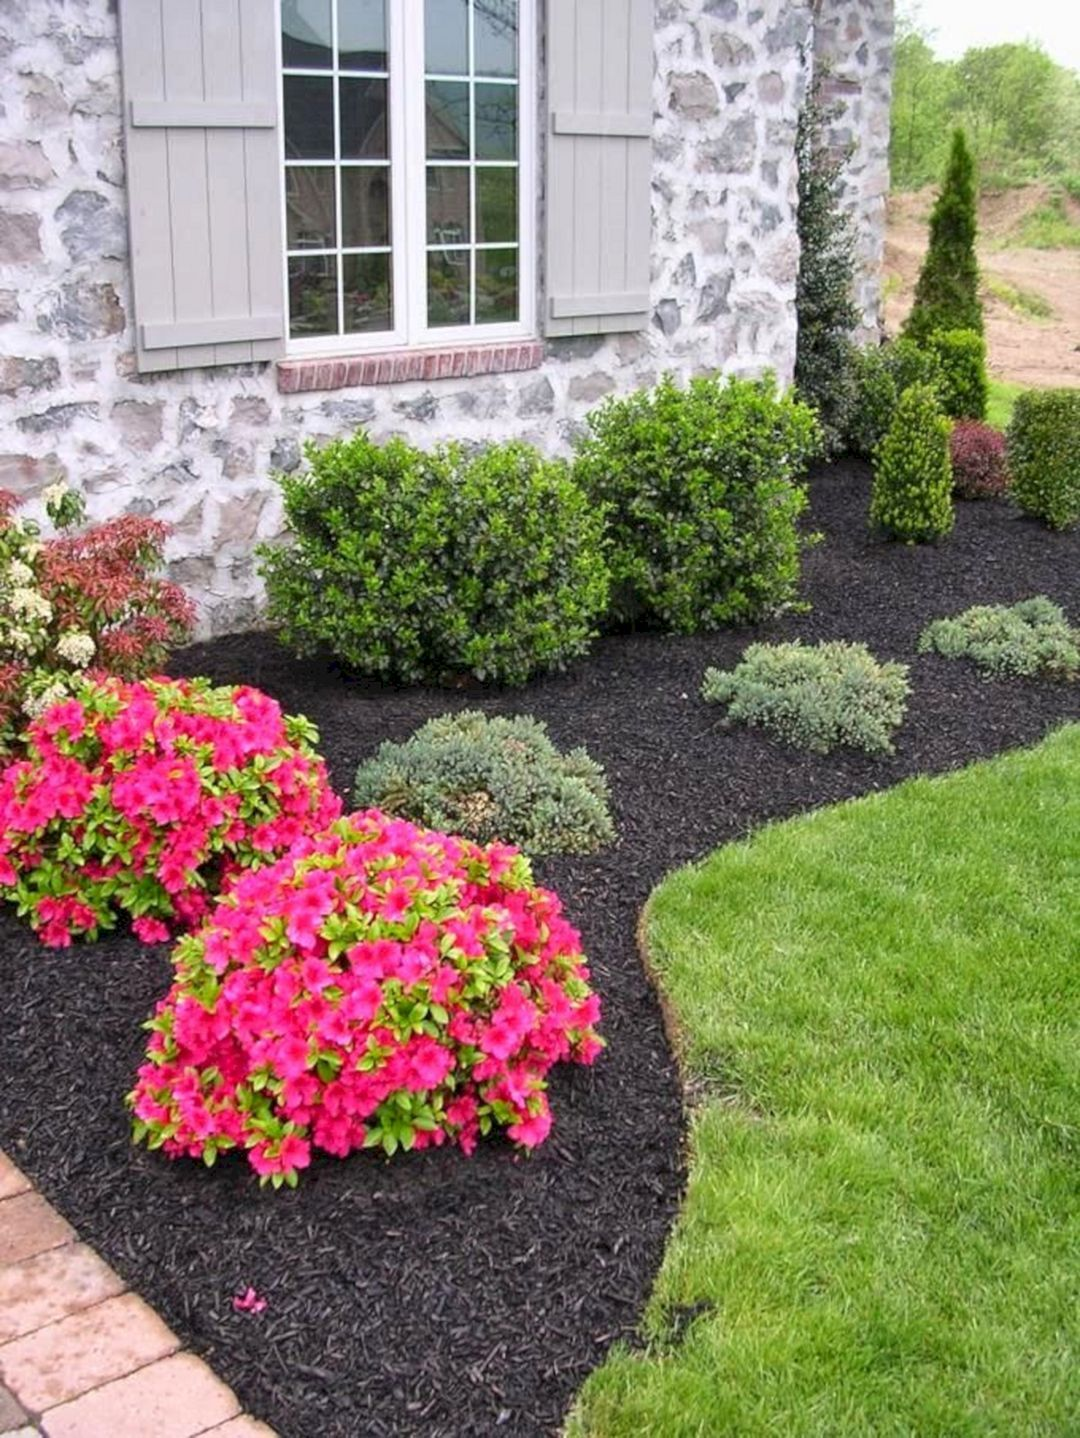 63+ Simple And Beautiful Front Yard Landscaping On A Budget